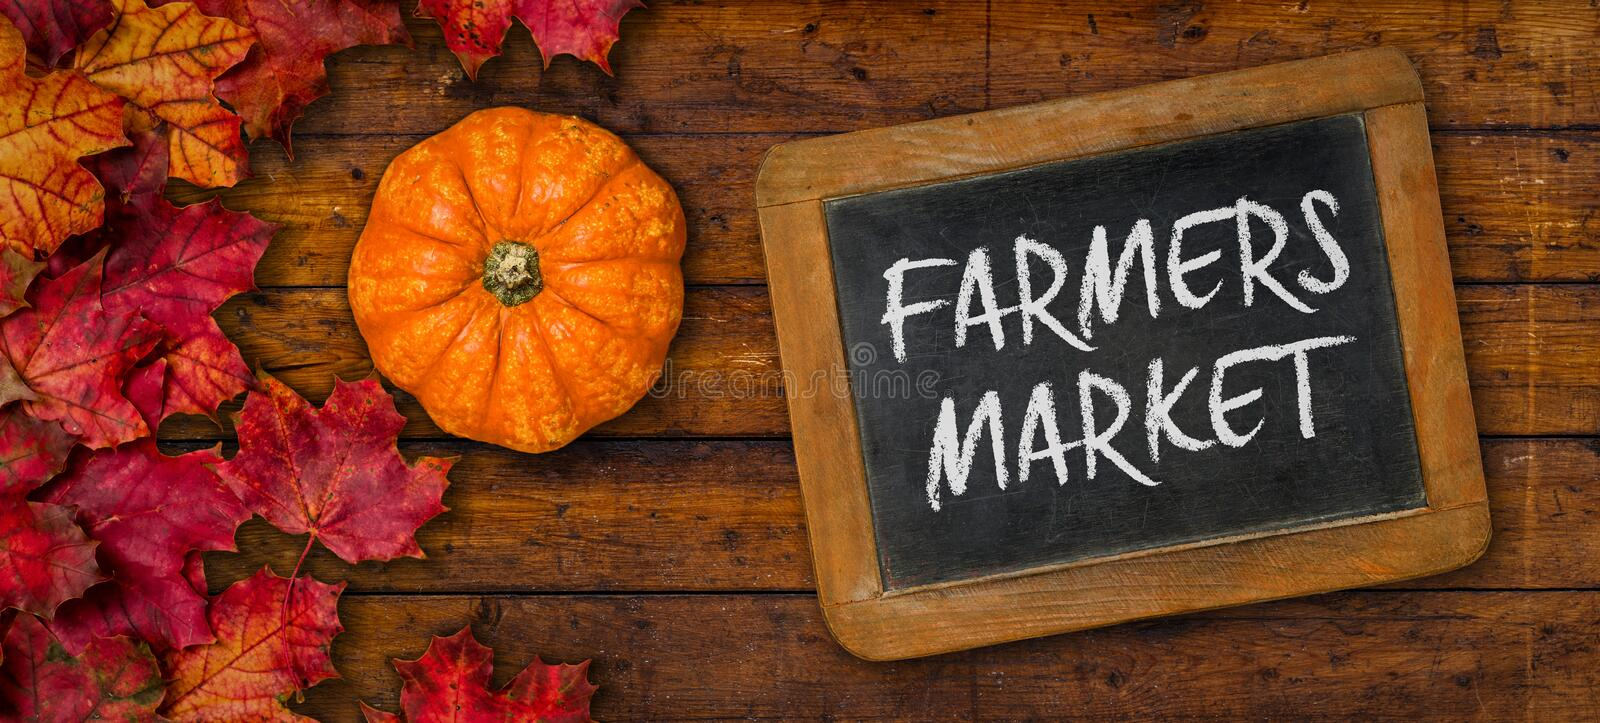 A rustic wooden background with autumn foliage - Farmers Market stock photo